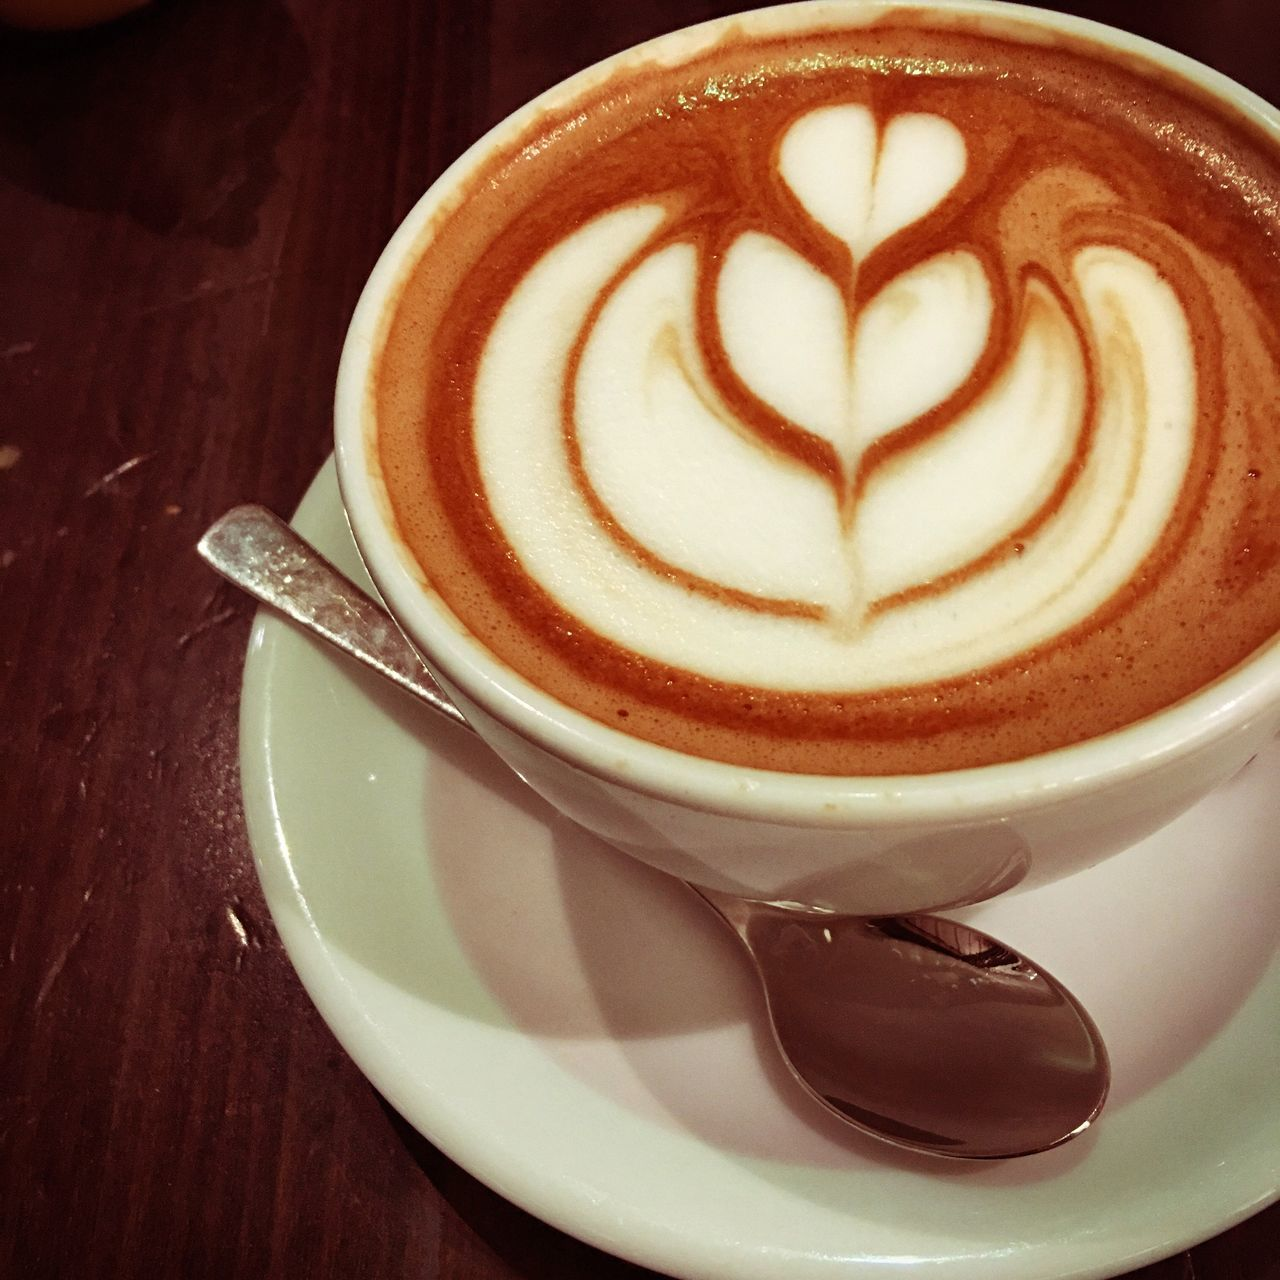 coffee cup, coffee - drink, frothy drink, drink, cappuccino, froth art, refreshment, food and drink, saucer, table, cup, latte, creativity, shape, close-up, freshness, foam, heart shape, indoors, no people, serving size, thick, day